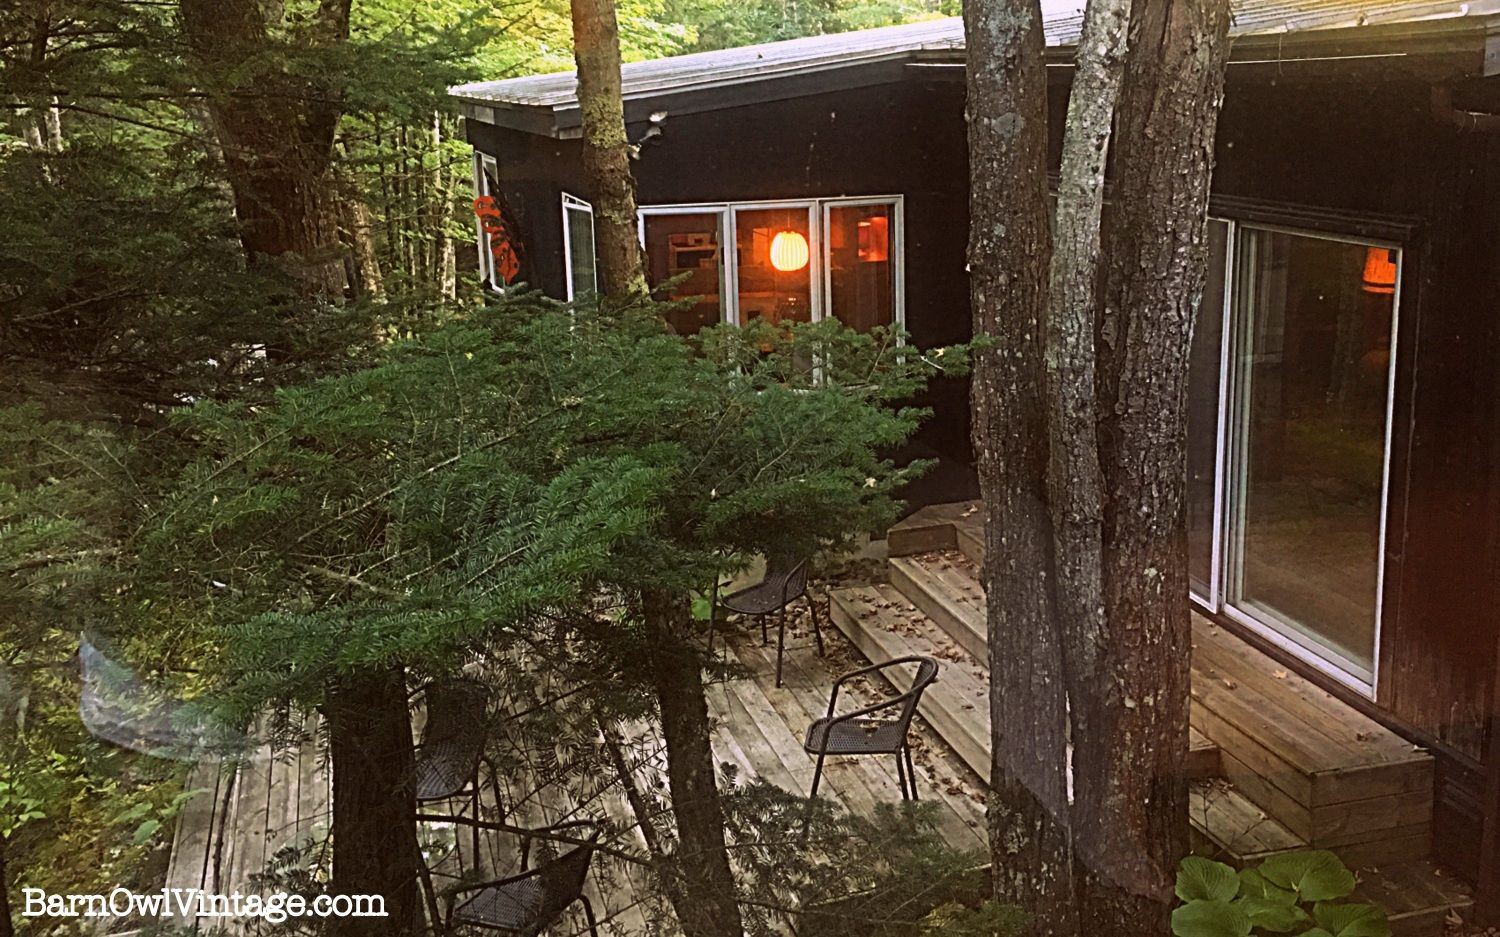 Untouched: Mid-Century Modern Home in Vermont. Take a peek inside this warm and cozy 1960s time capsule full of character and charm. A partial view of the back deck